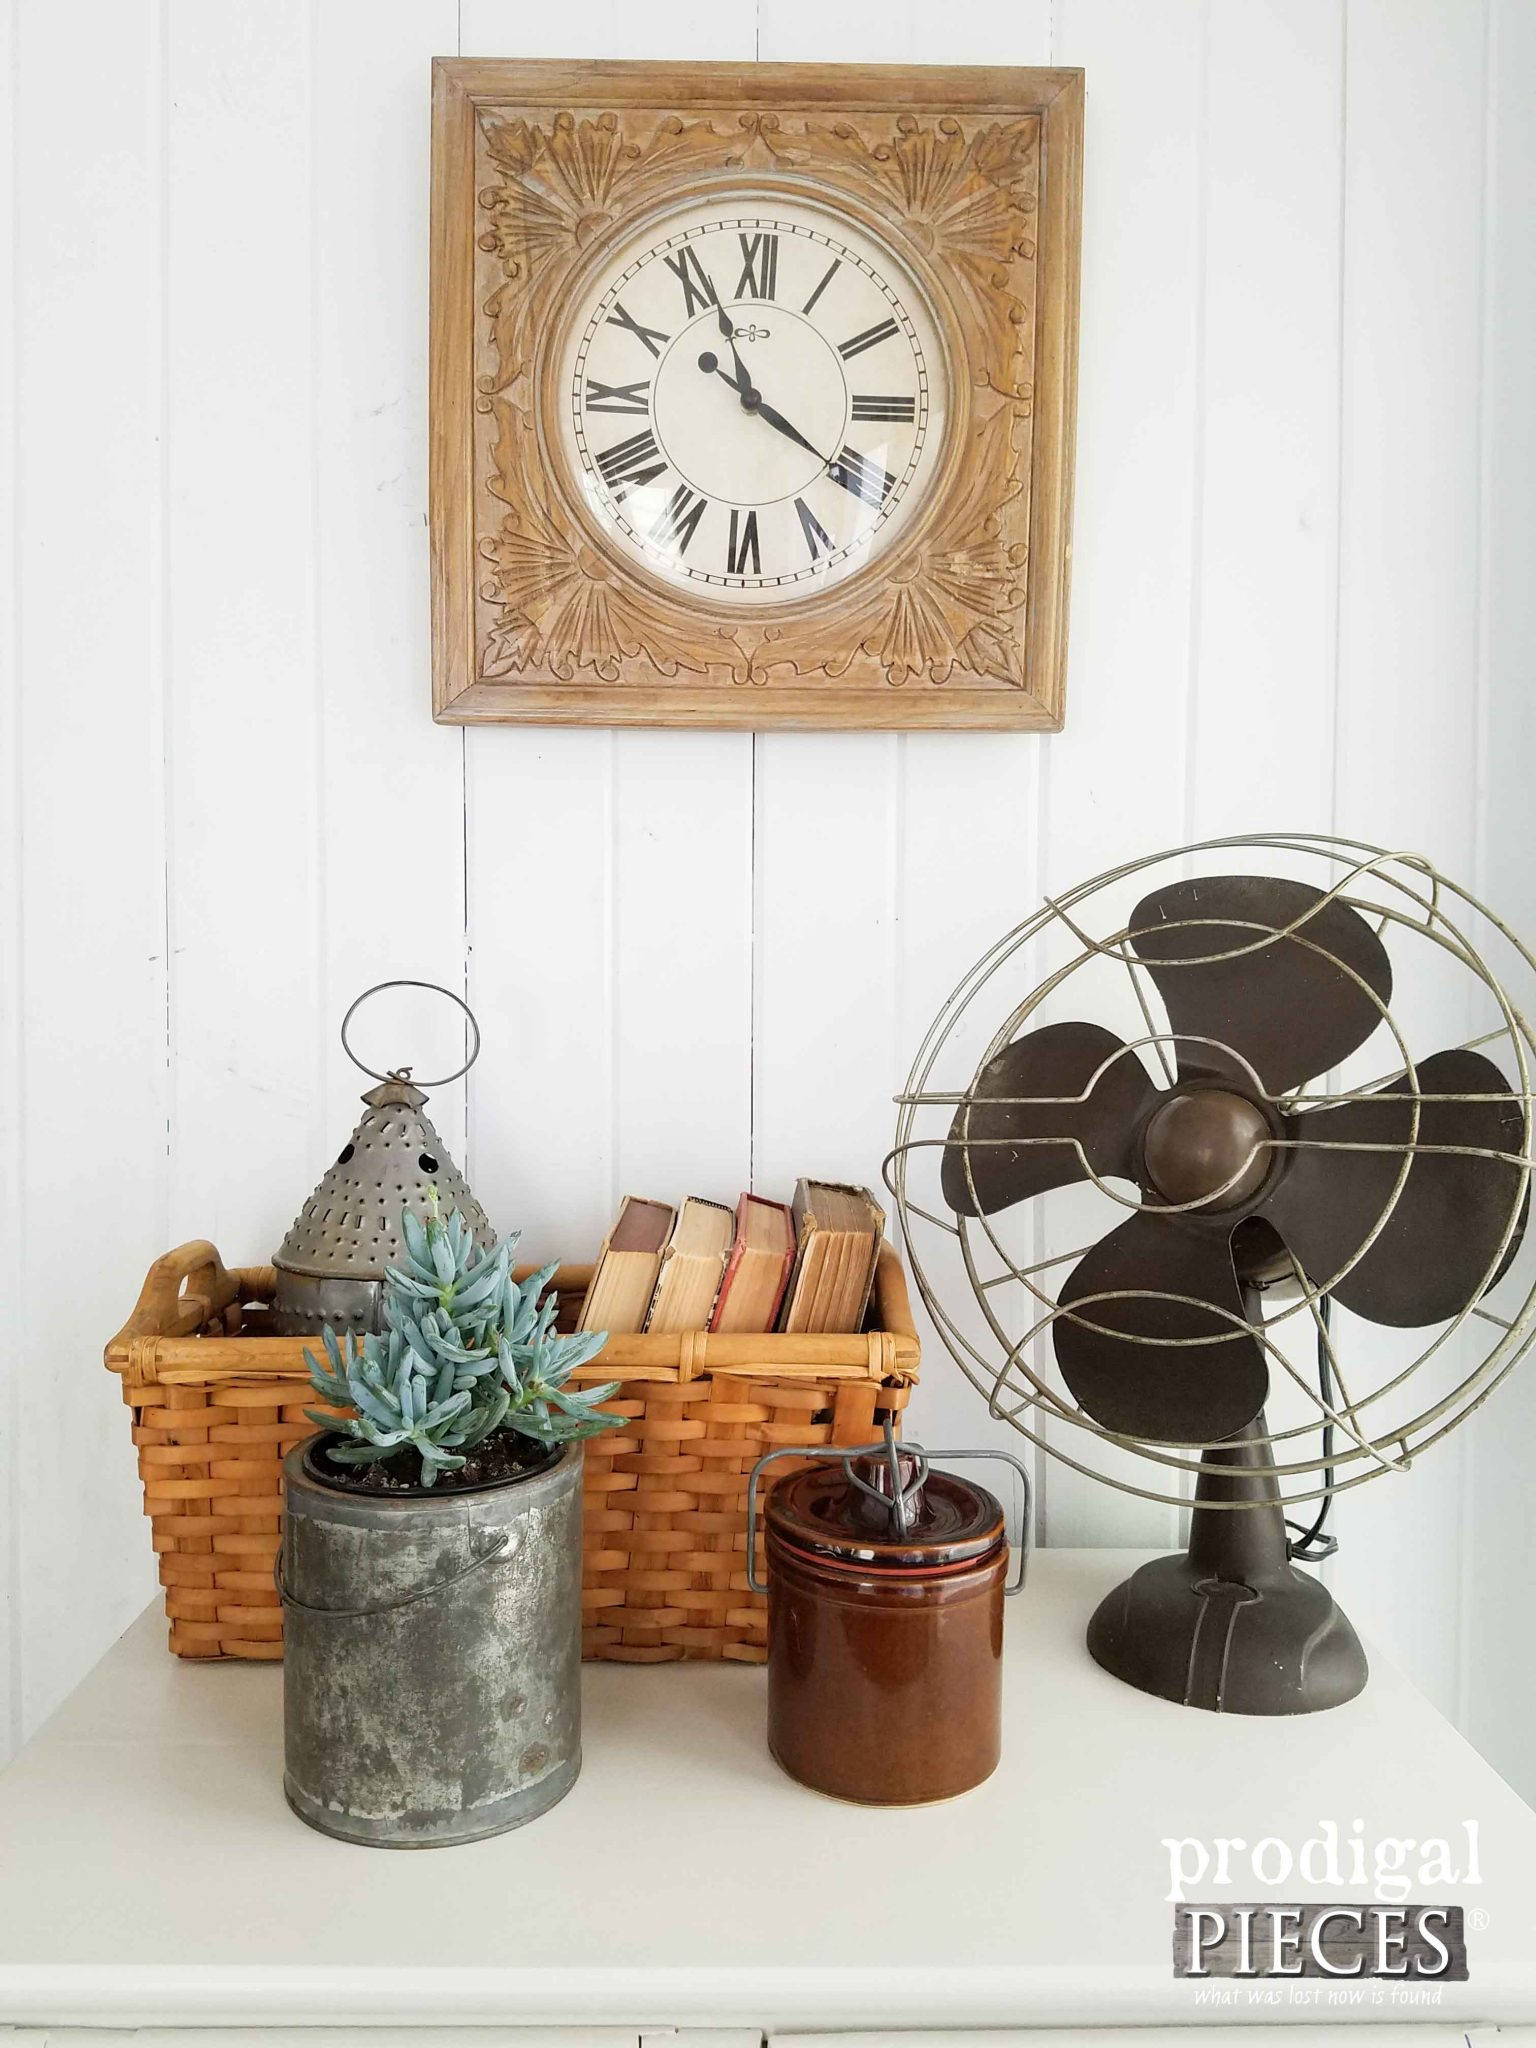 Industrial Farmhouse Chic Vignette by Prodigal Pieces | prodigalpieces.com